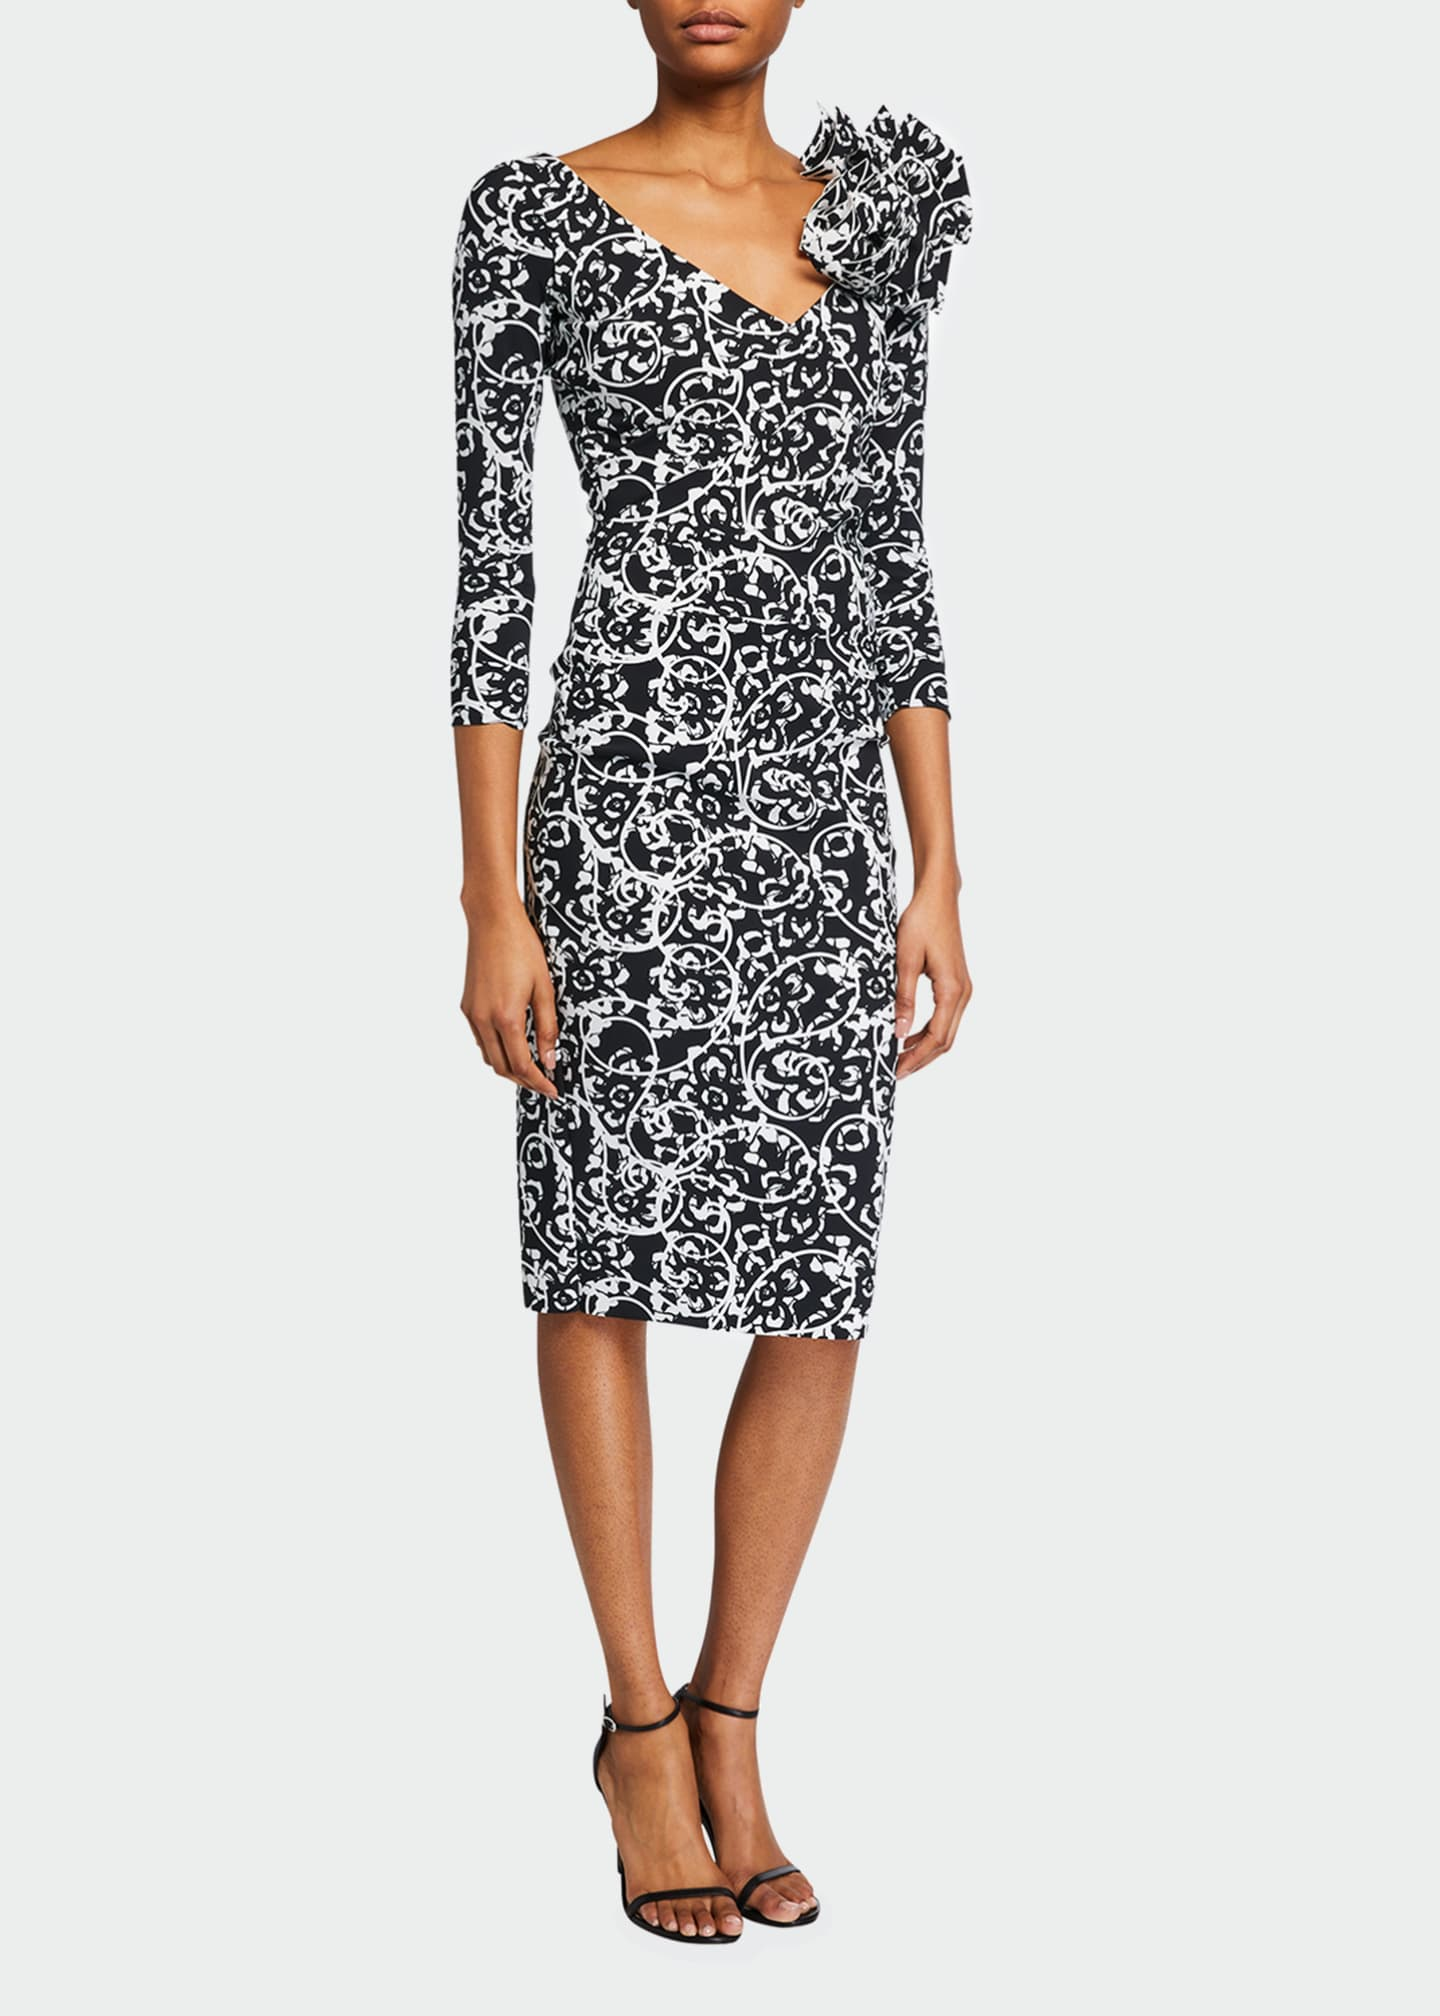 V-Neck Printed 3/4-Sleeve Dress w/ Shoulder Detail